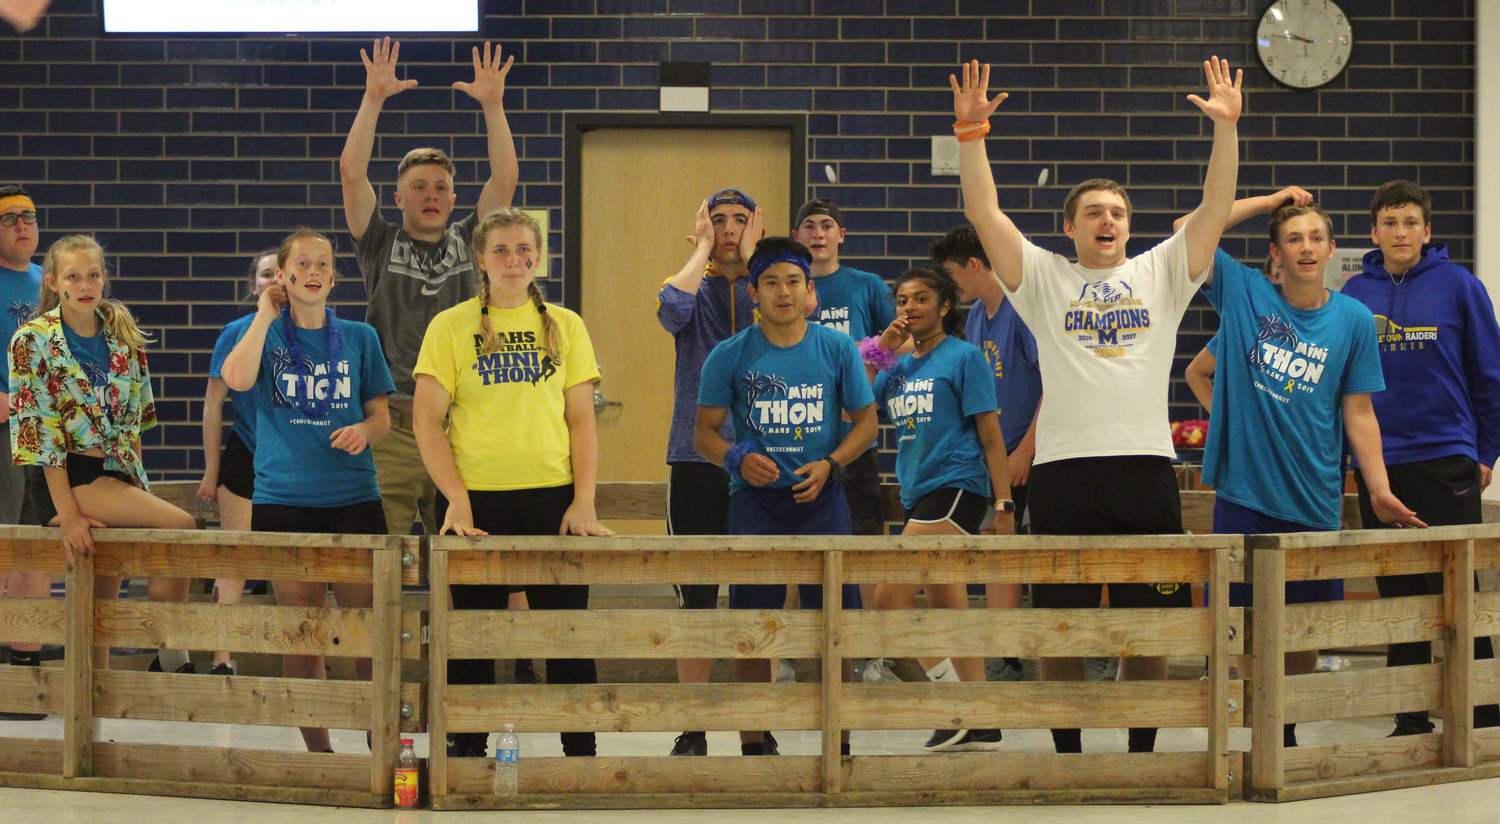 Gaga ball players ask for the ball back during Middletown Area High School's Mini-THON on May 3.